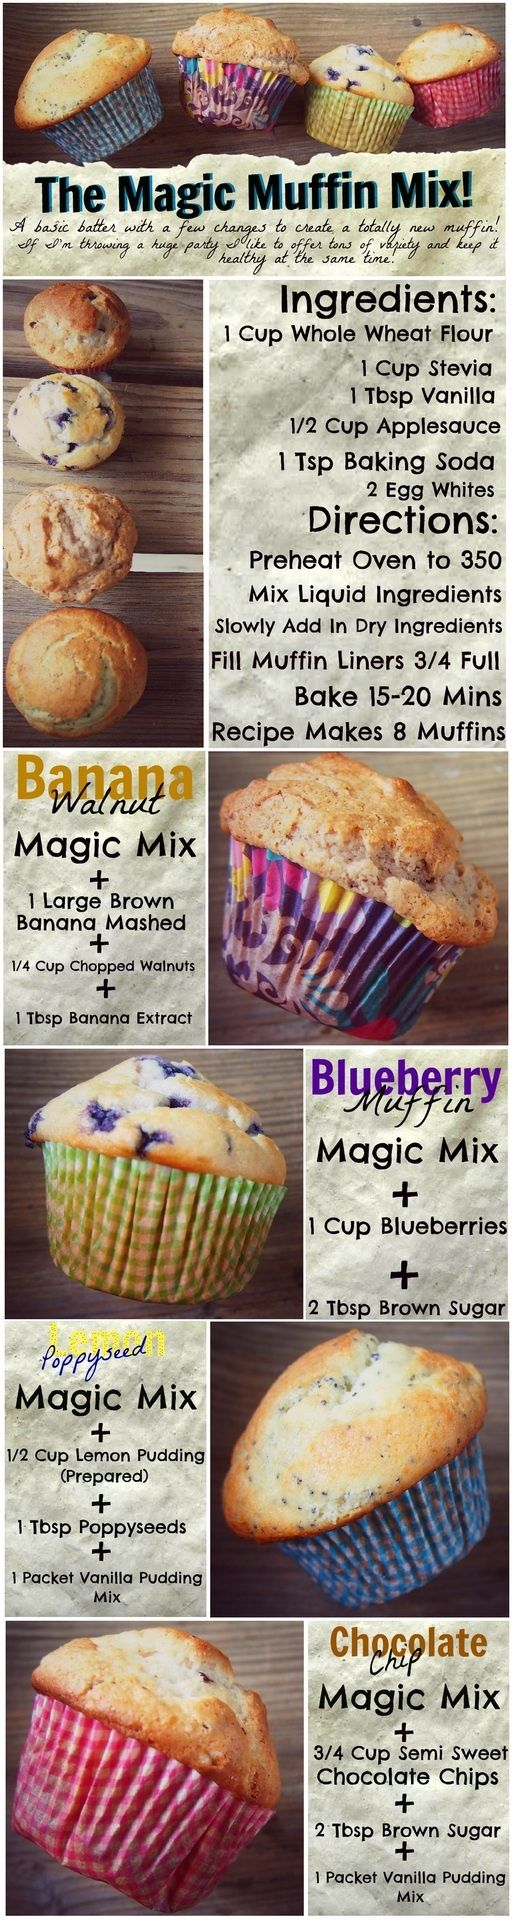 Magic Muffin Mix (I would replace the stevia).